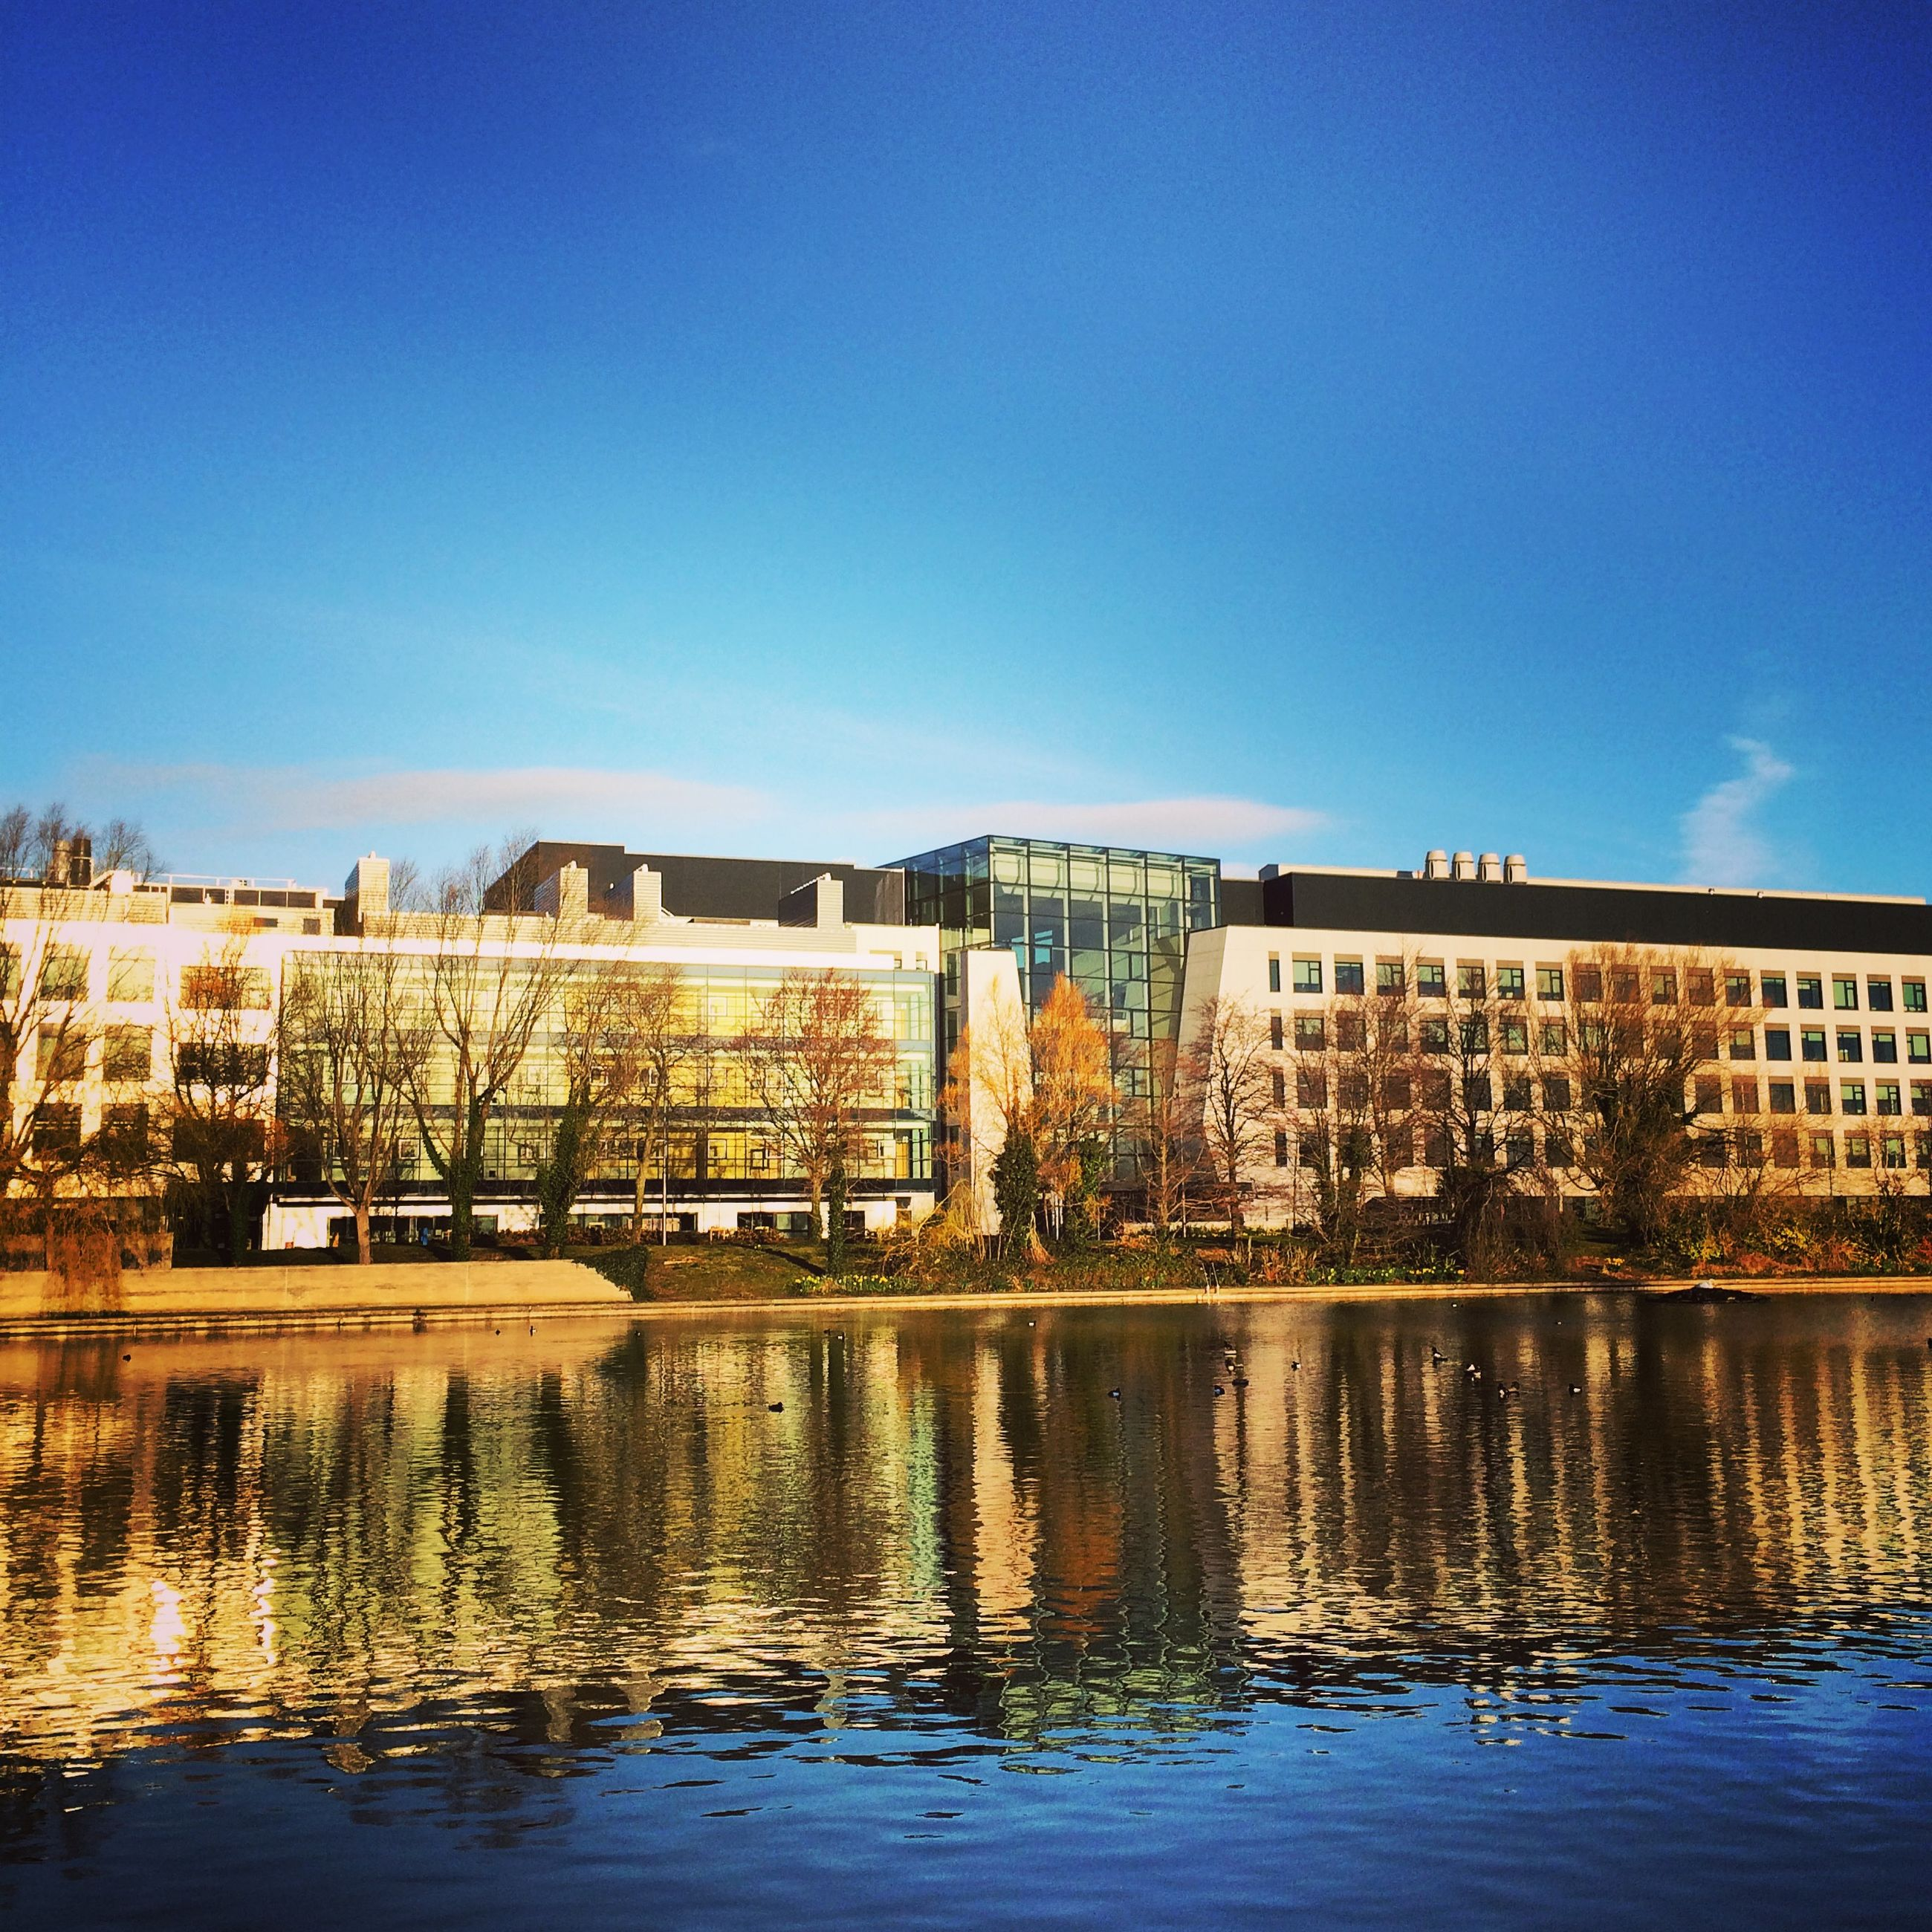 architecture, built structure, building exterior, water, clear sky, blue, waterfront, copy space, reflection, river, city, residential structure, residential building, building, sky, day, canal, lake, outdoors, house